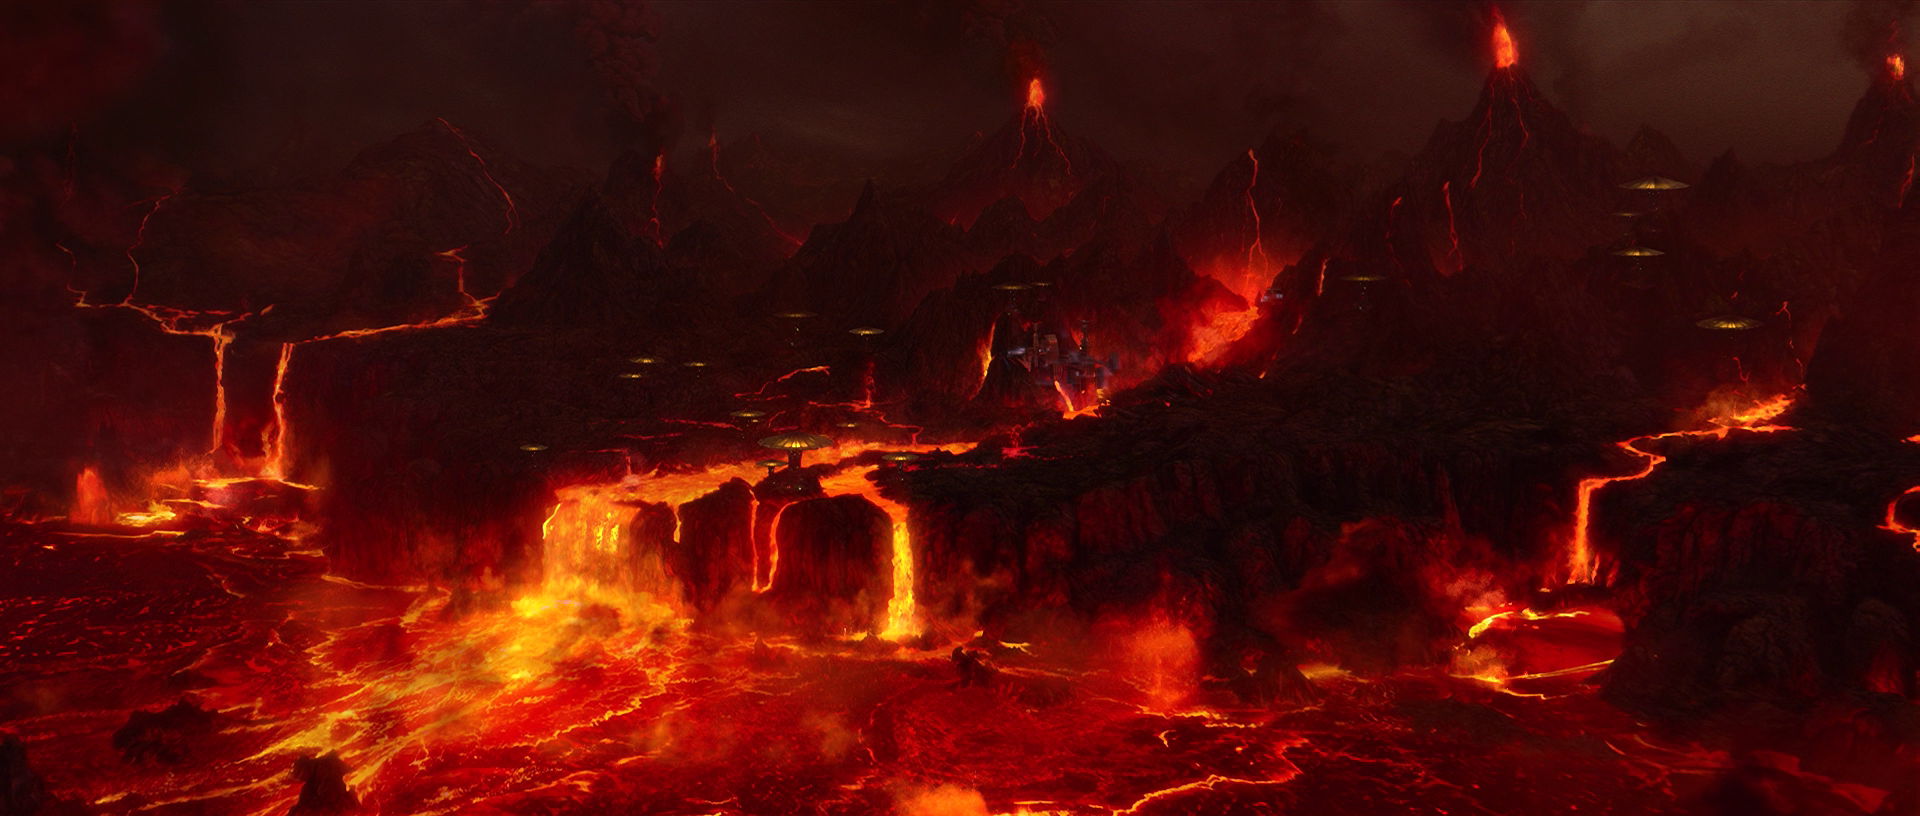 Lava on Mustafar